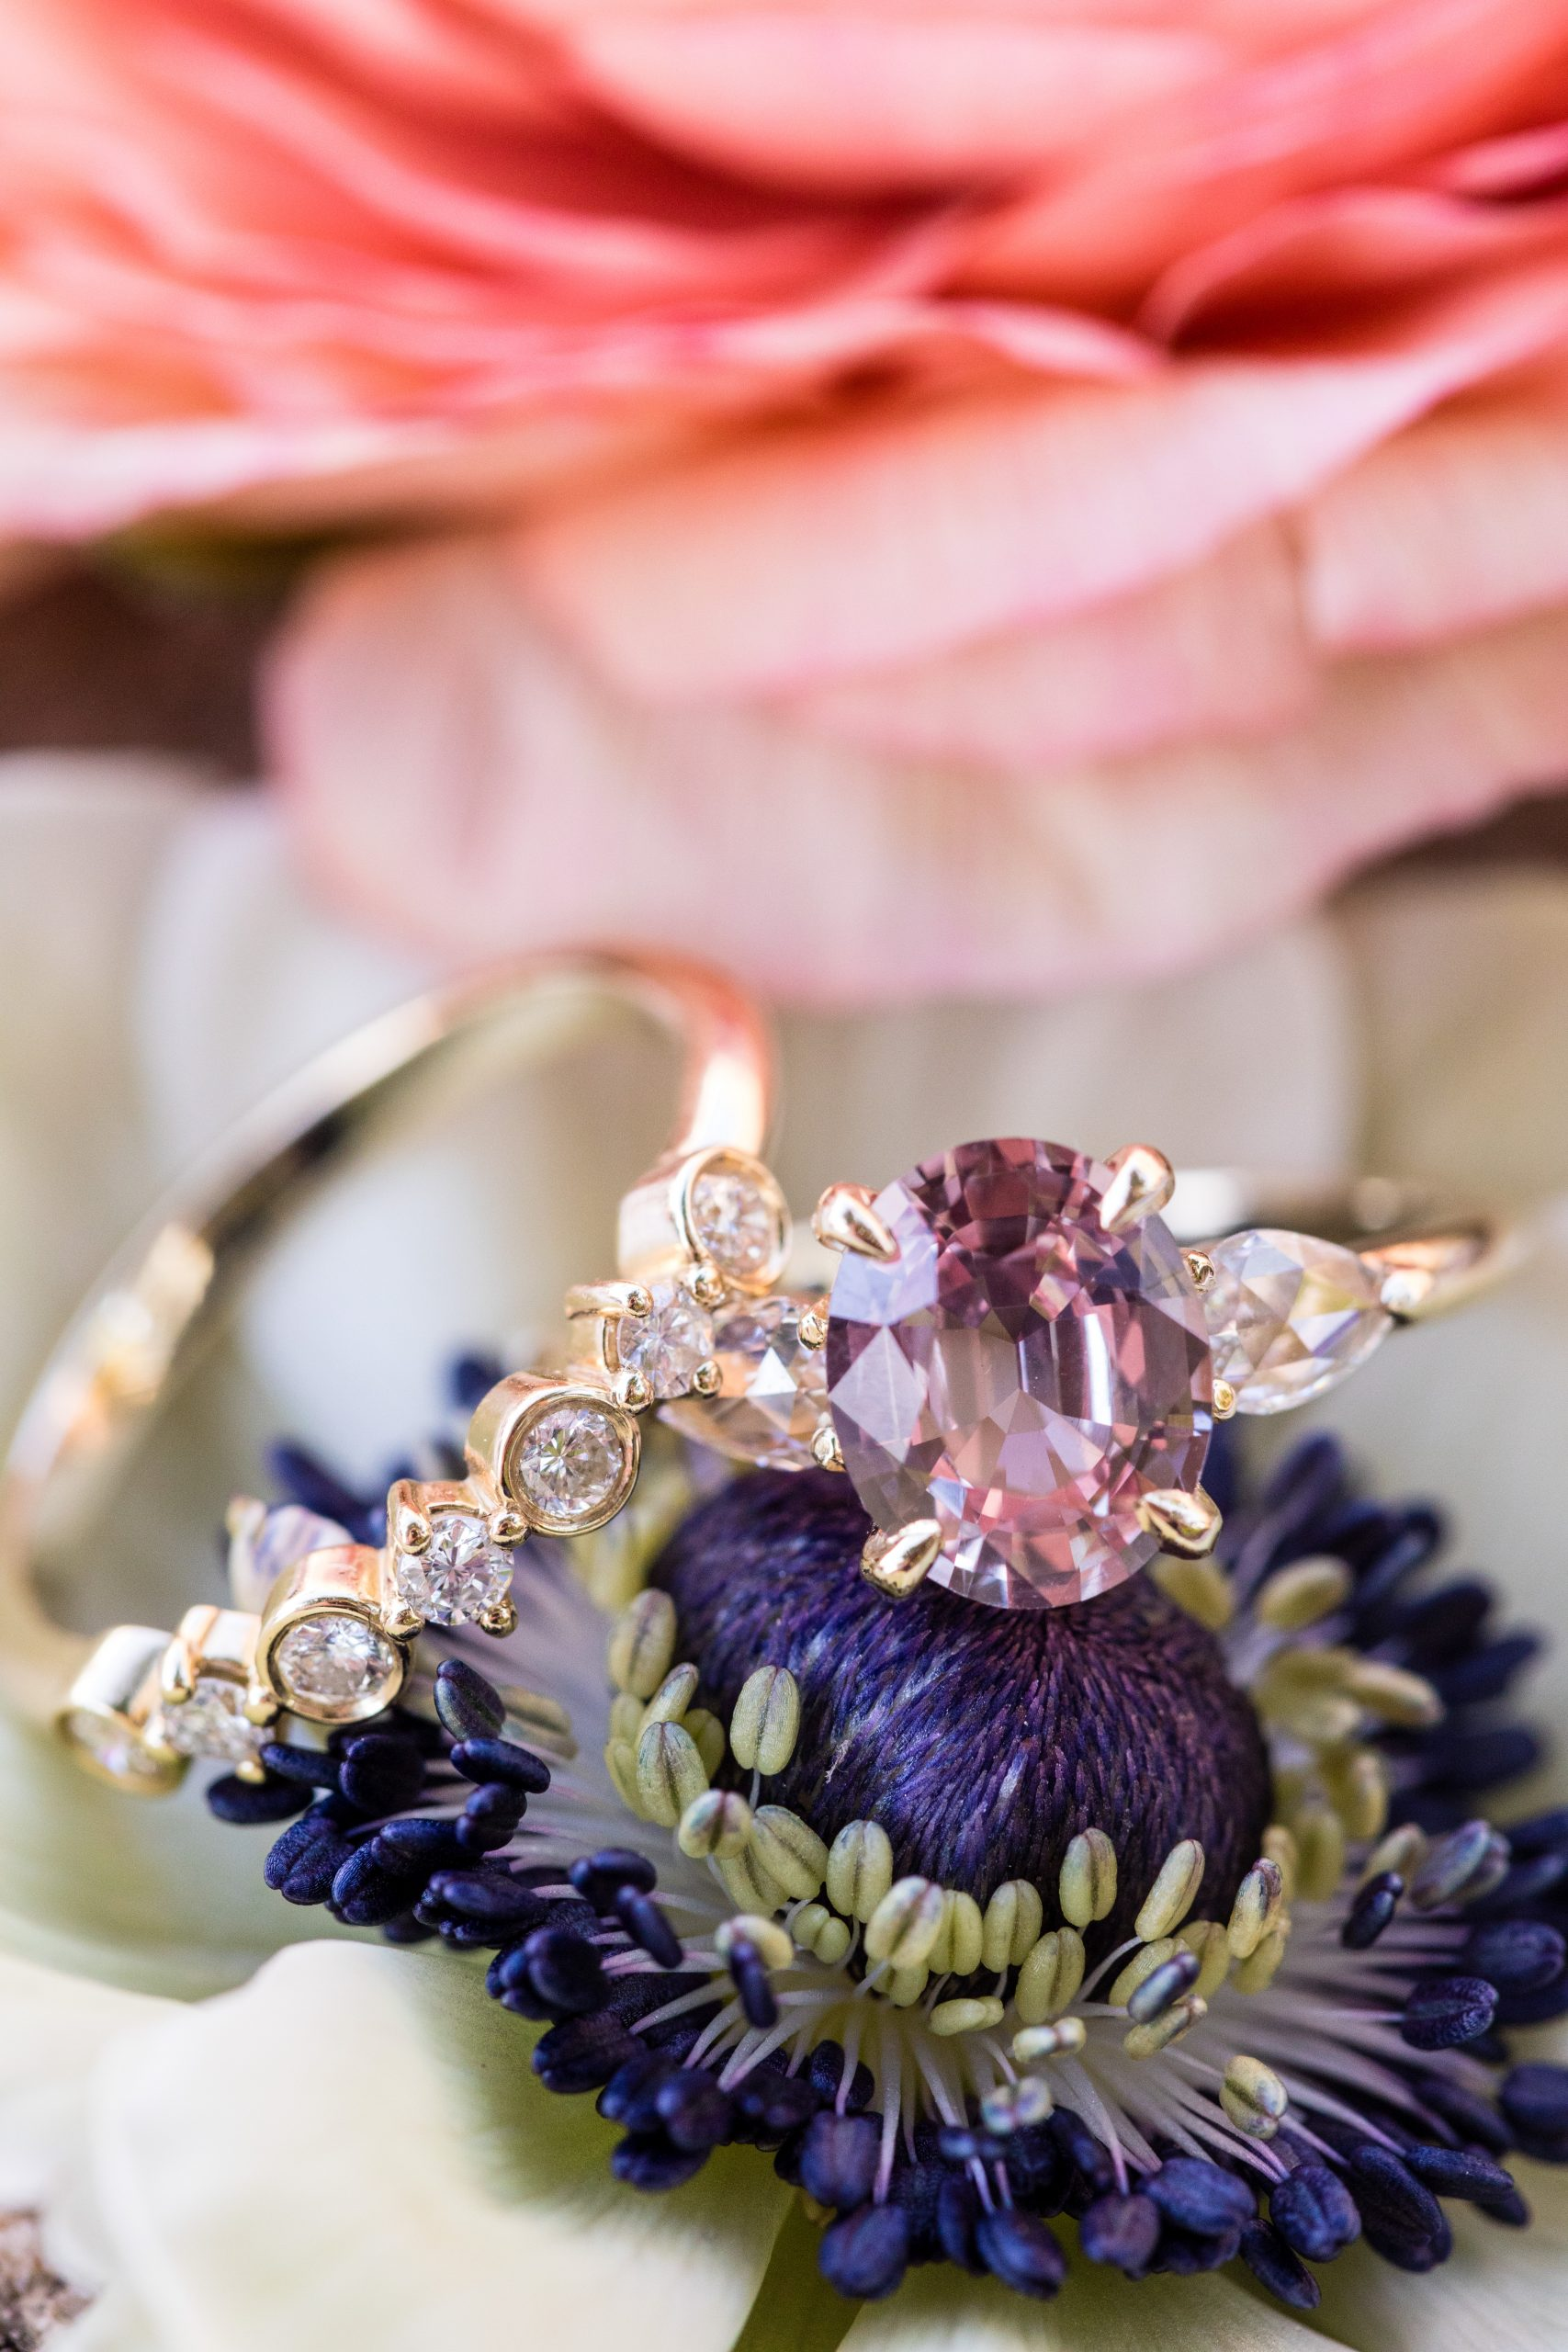 Detailed shot of the extraordinary wedding band and engagement ring laying on a flower at the Michener Museum styled urban contemporary shoot for Ashley Gerrity Photography this past Summer. Featured on Dream Weddings.